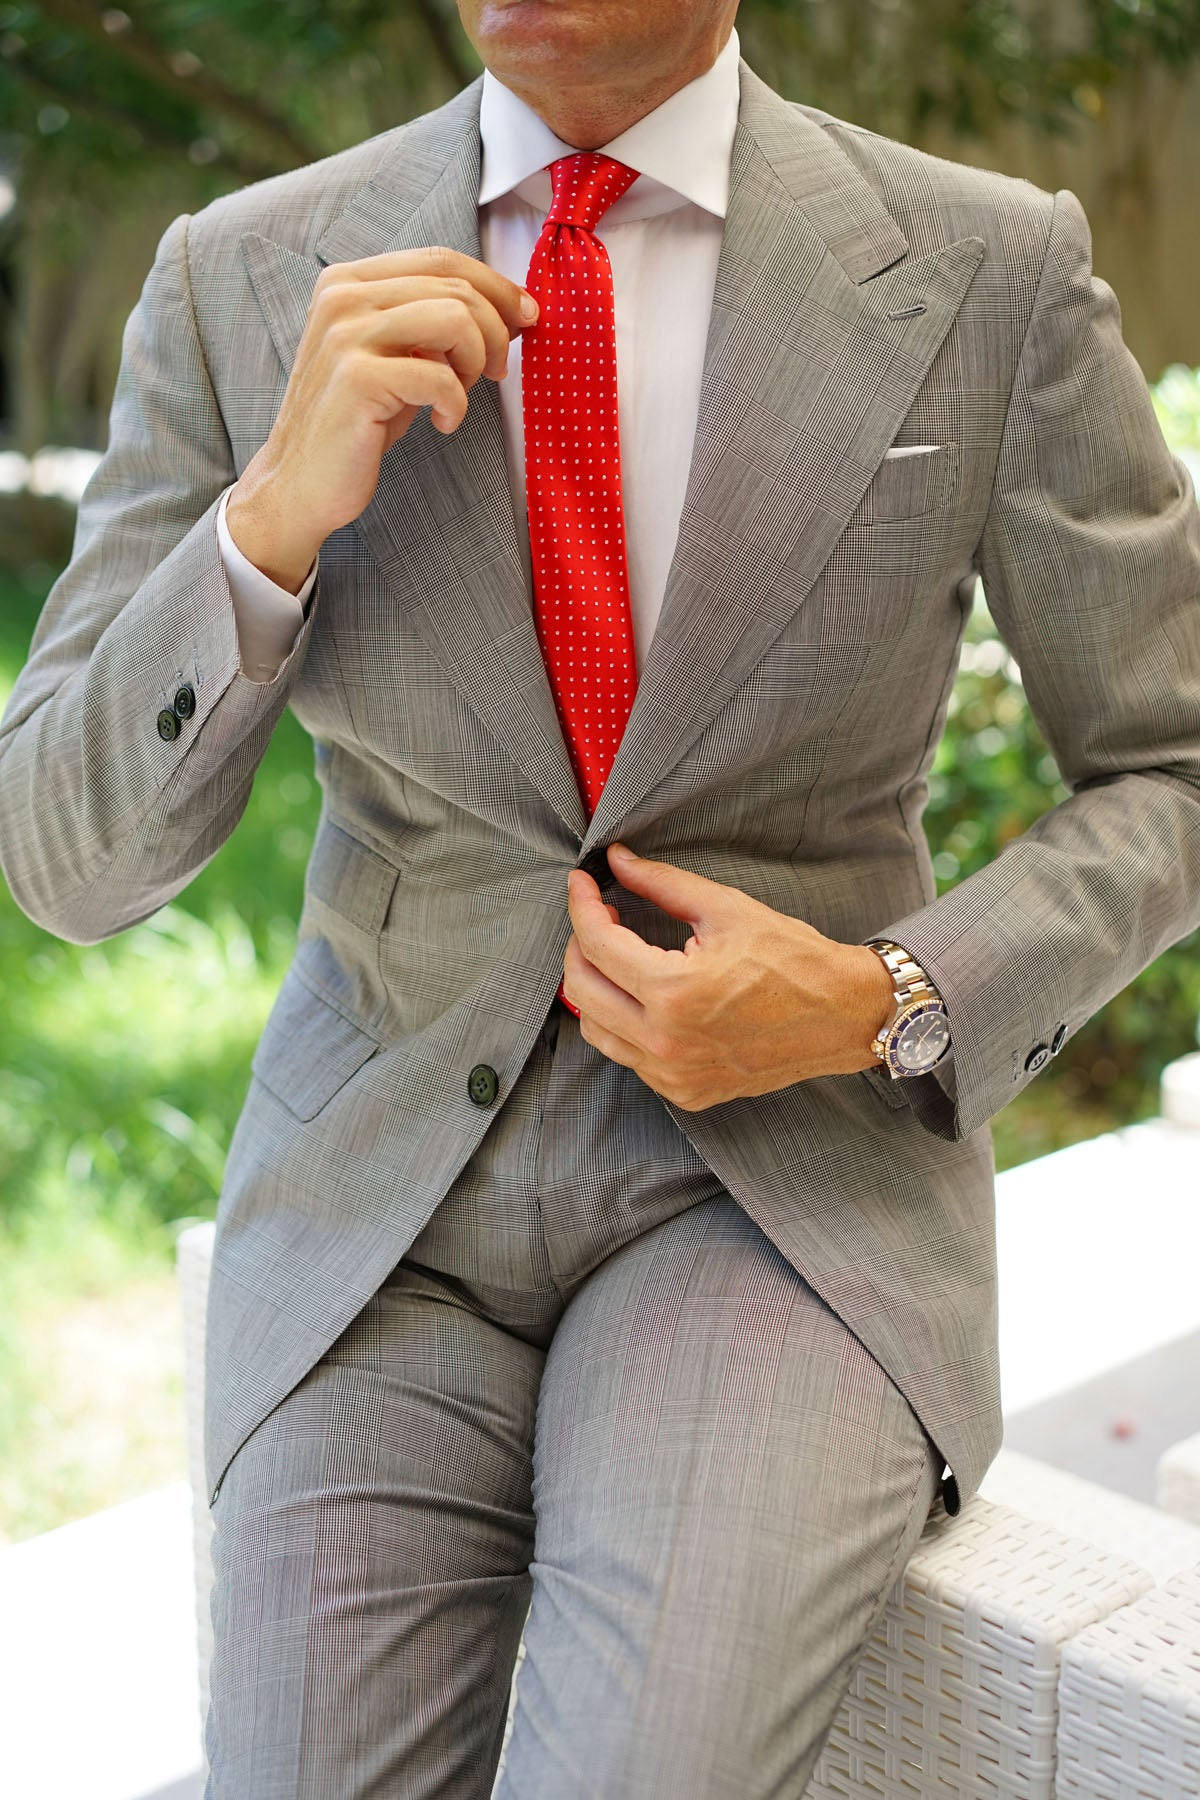 Red Skinny Tie with White Polka Dots